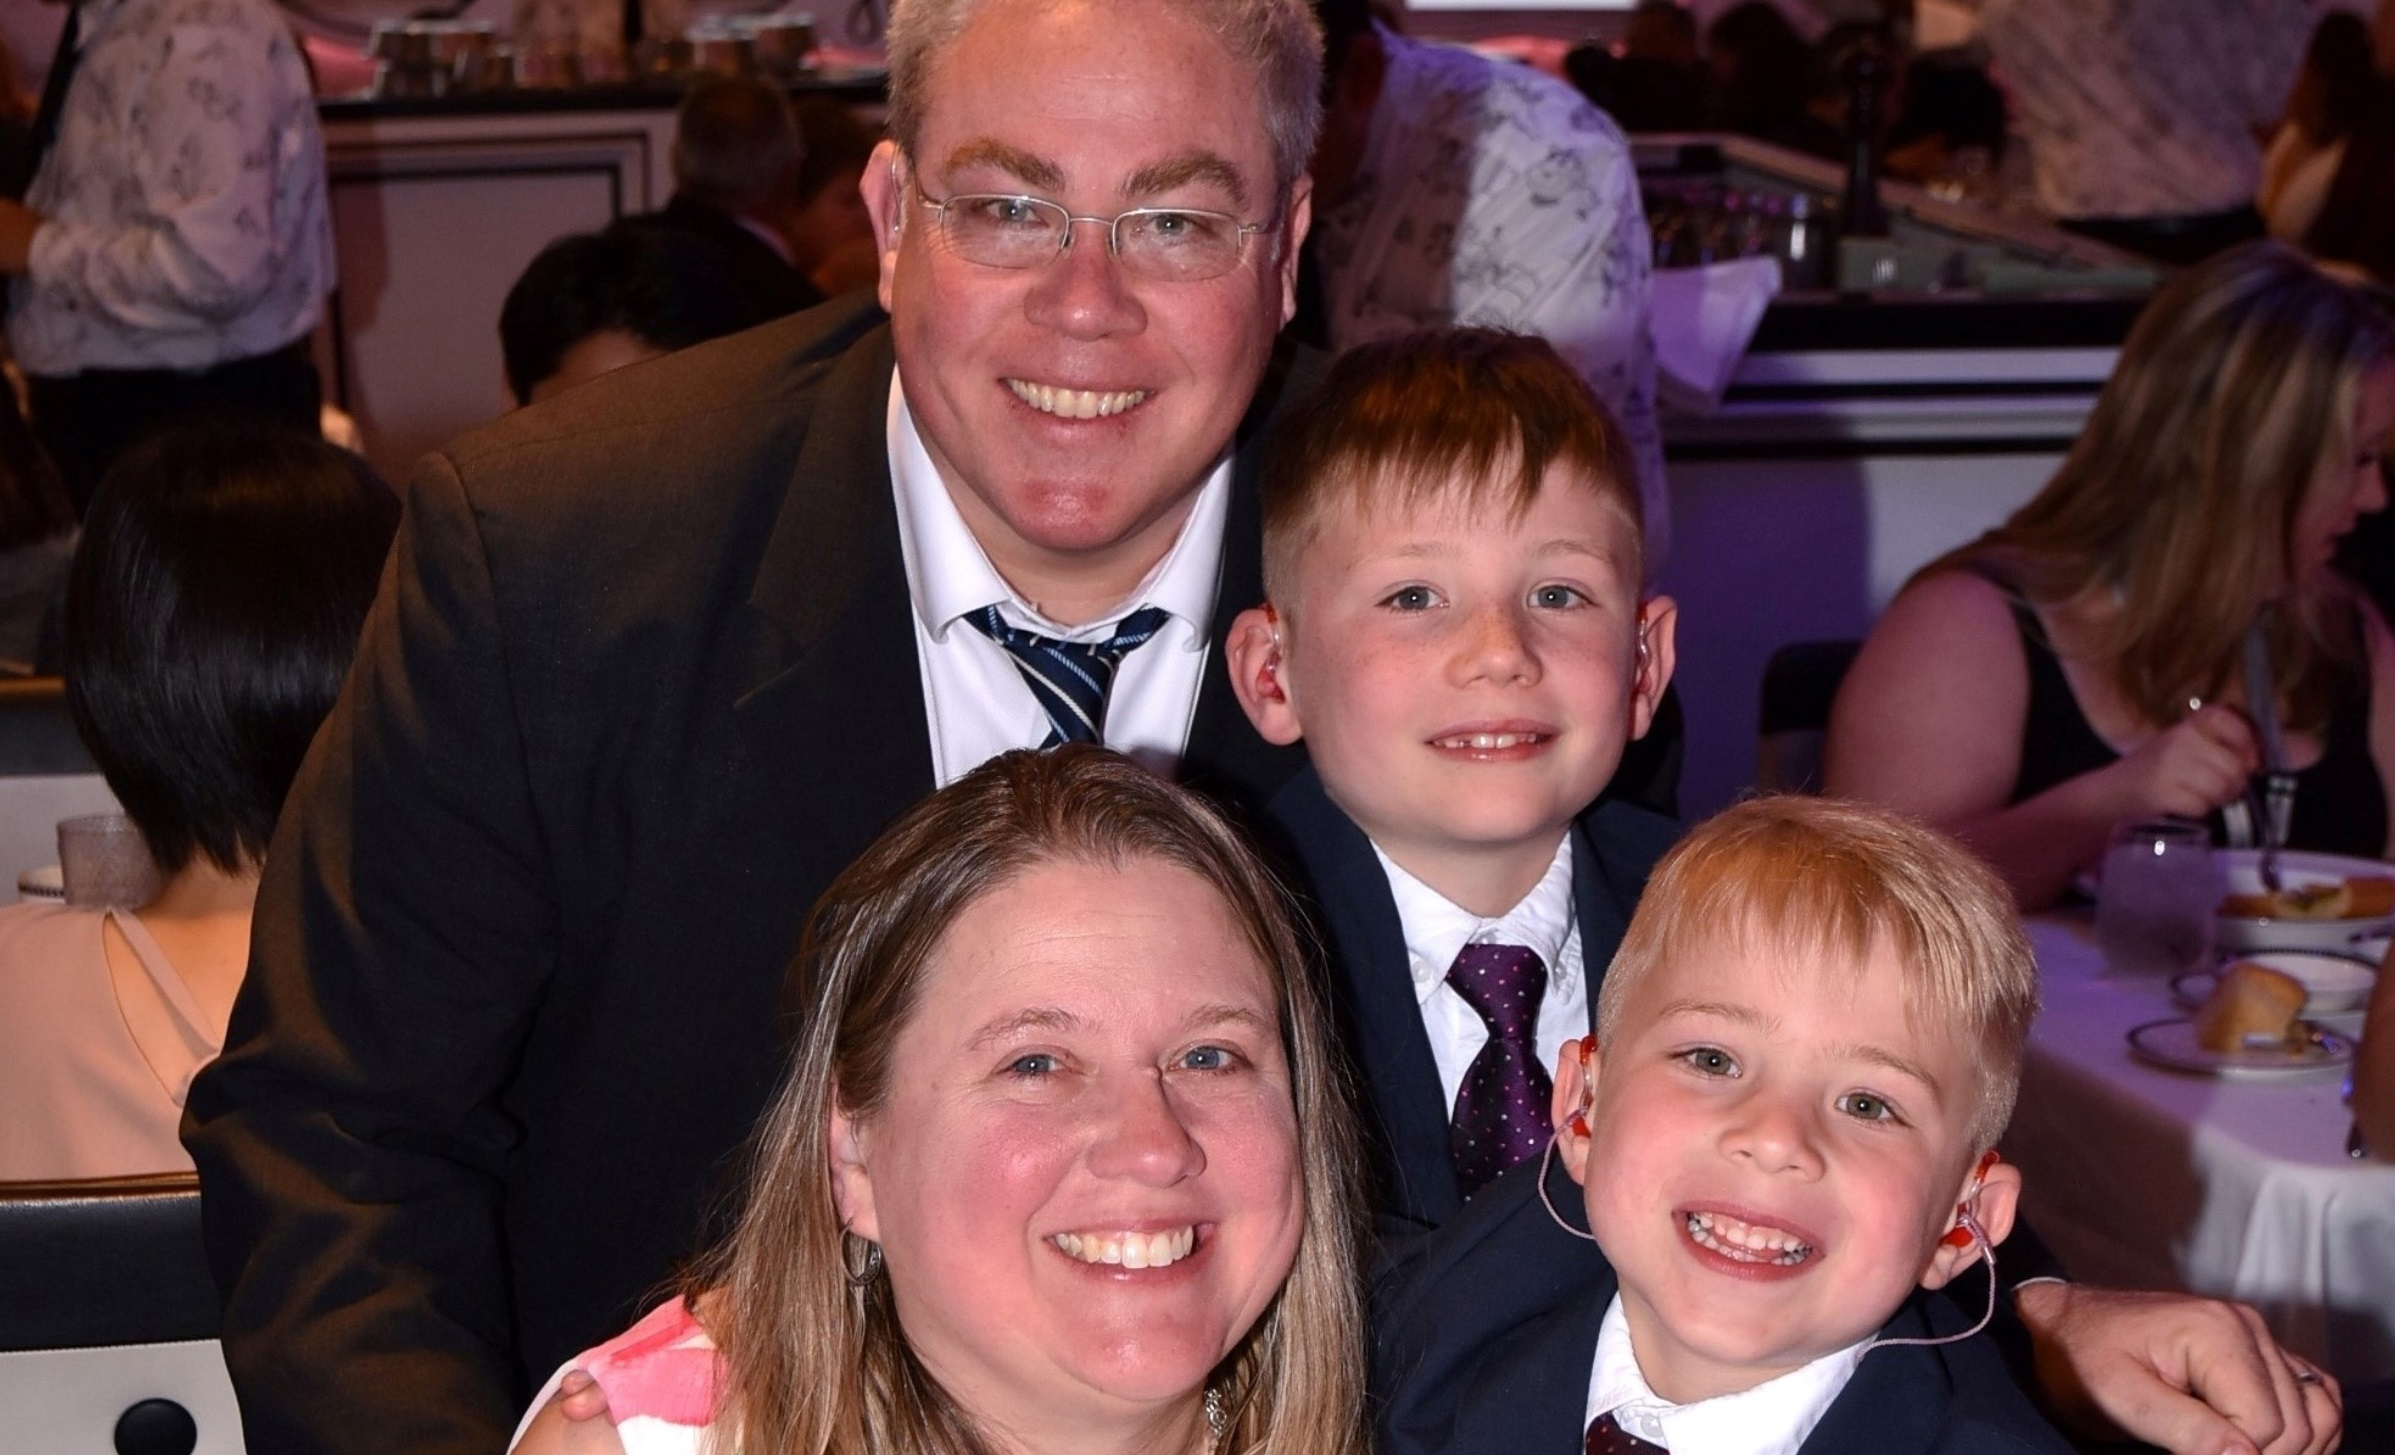 The Gramer family posing for a picture in a restaurant. Father Brendan, mother Laura, and brothers Brett and Luke. They are wearing formal attire.